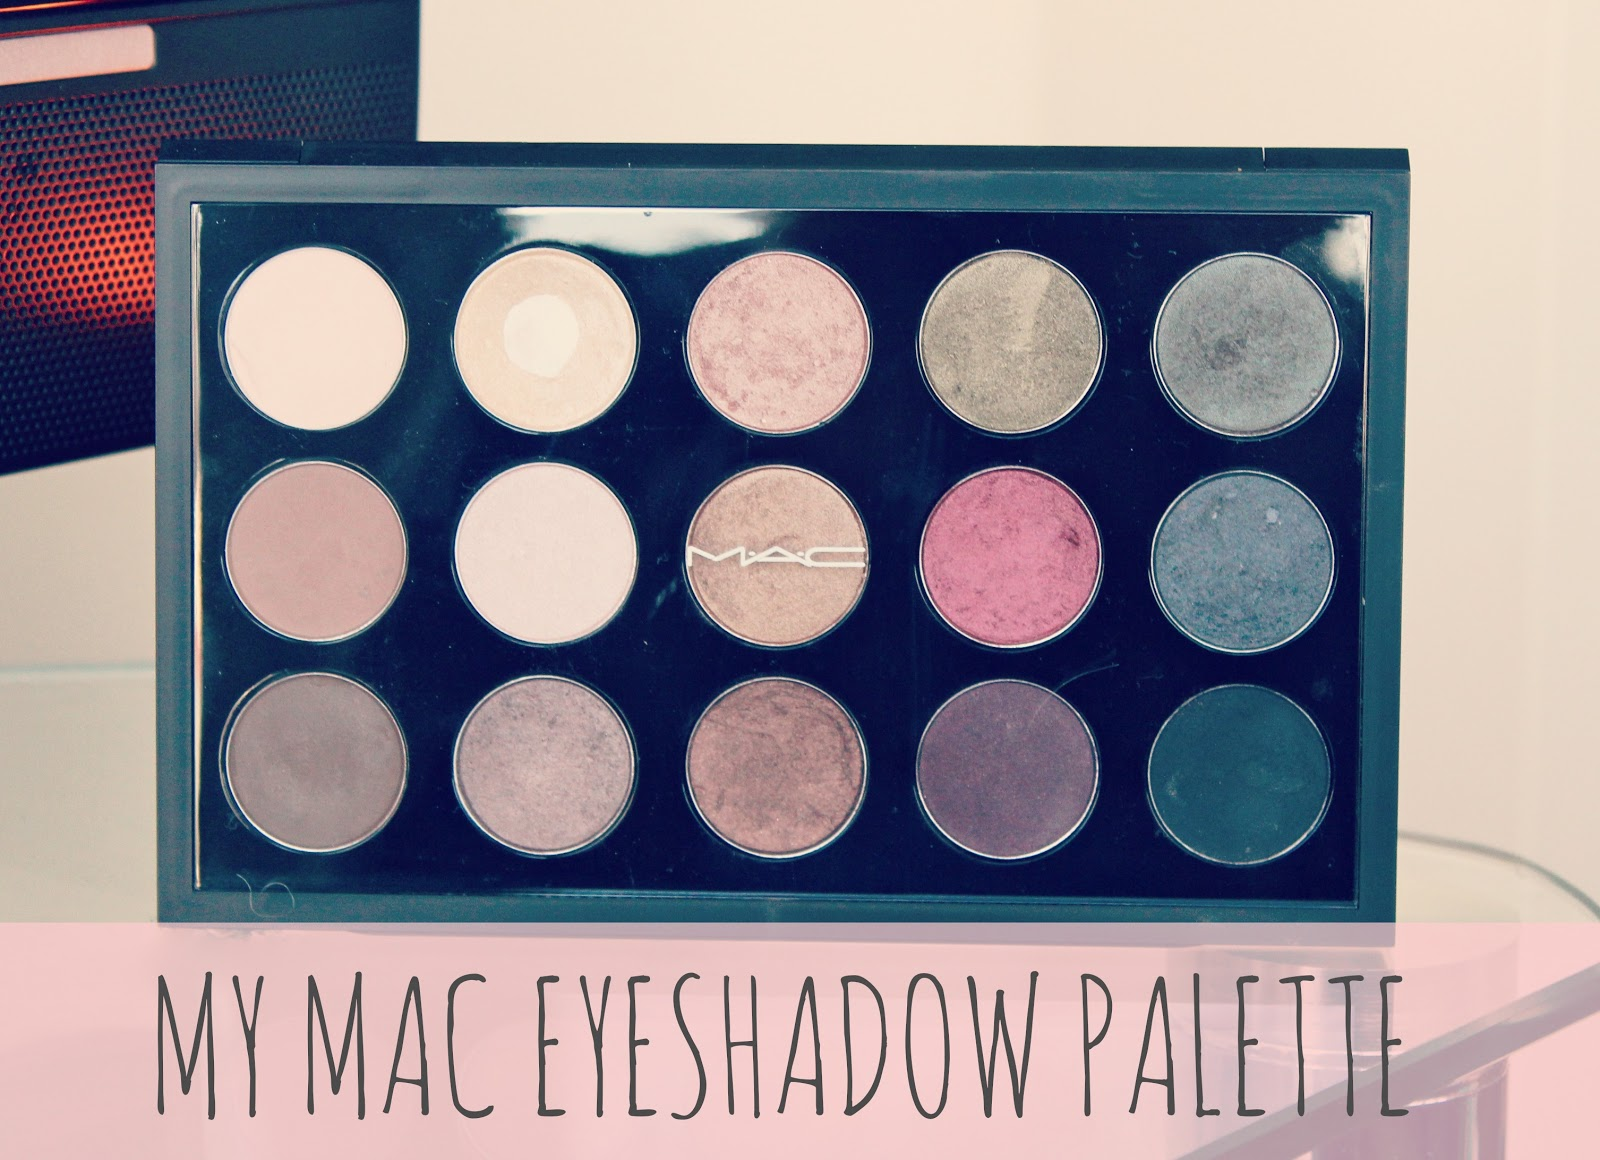 My mac eyeshadow collection swatches 15 pan pro palette my mac eyeshadow palette mac eyeshadow collection mac eyeshadow swatches neutral mac eyeshadows altavistaventures Images